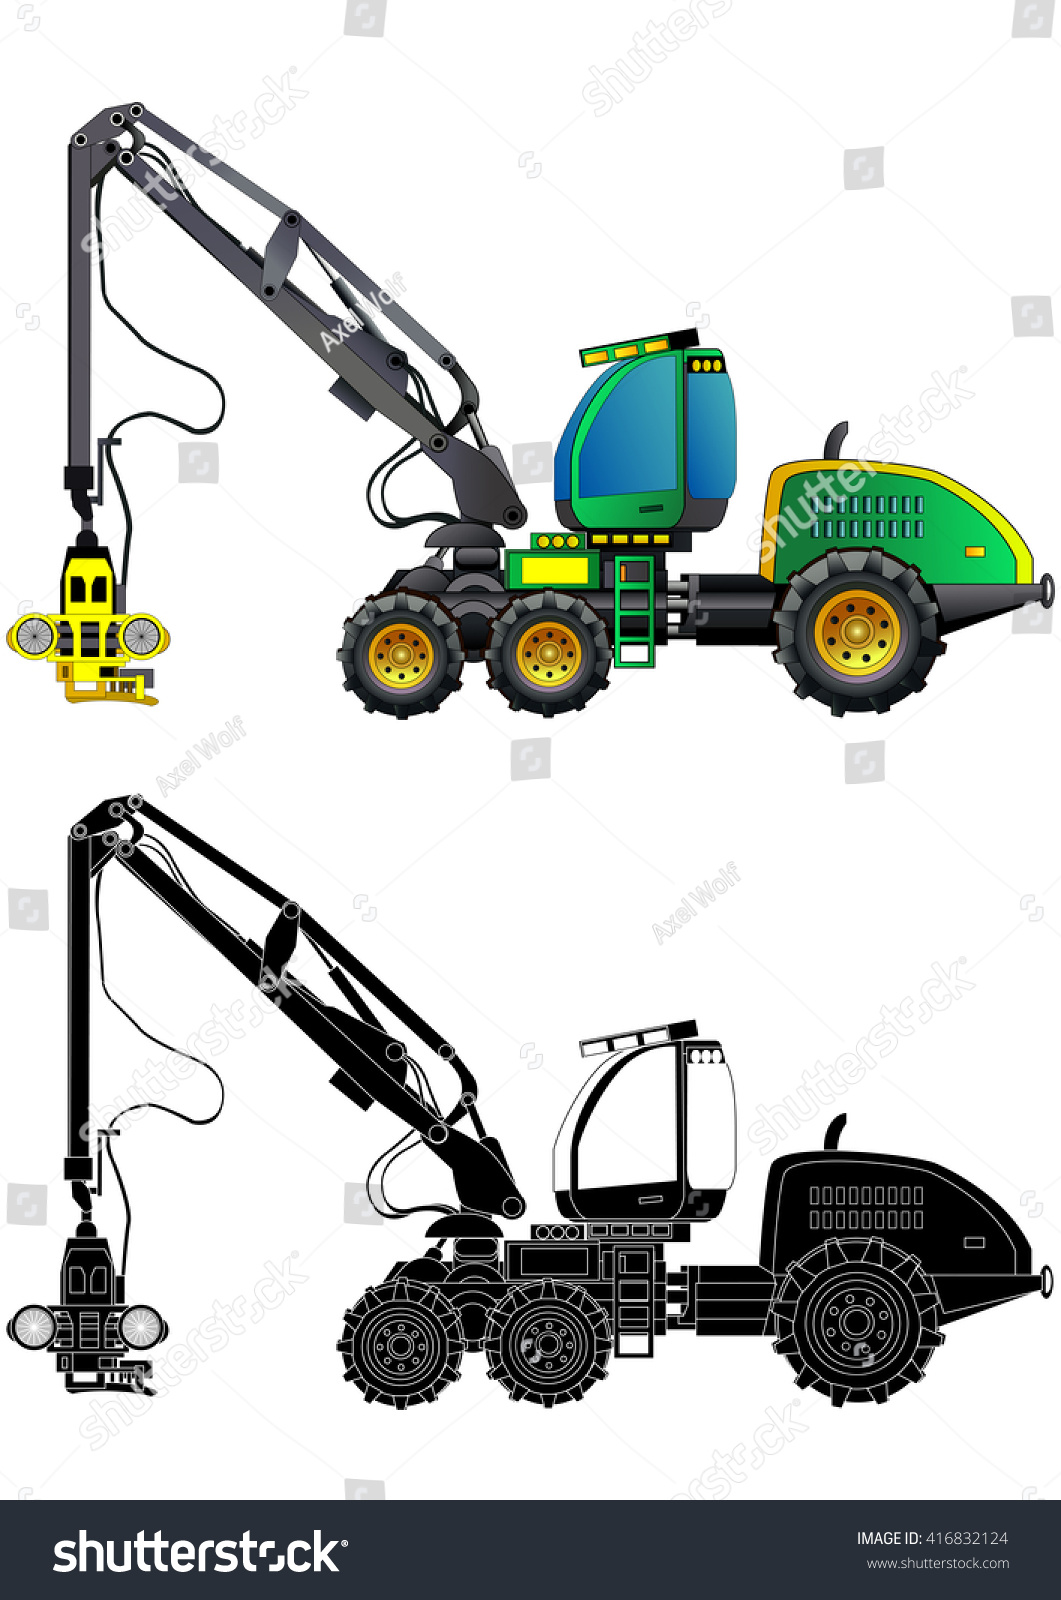 Tractor Cartoon Picker : Forestry production machine harvester heavy stock